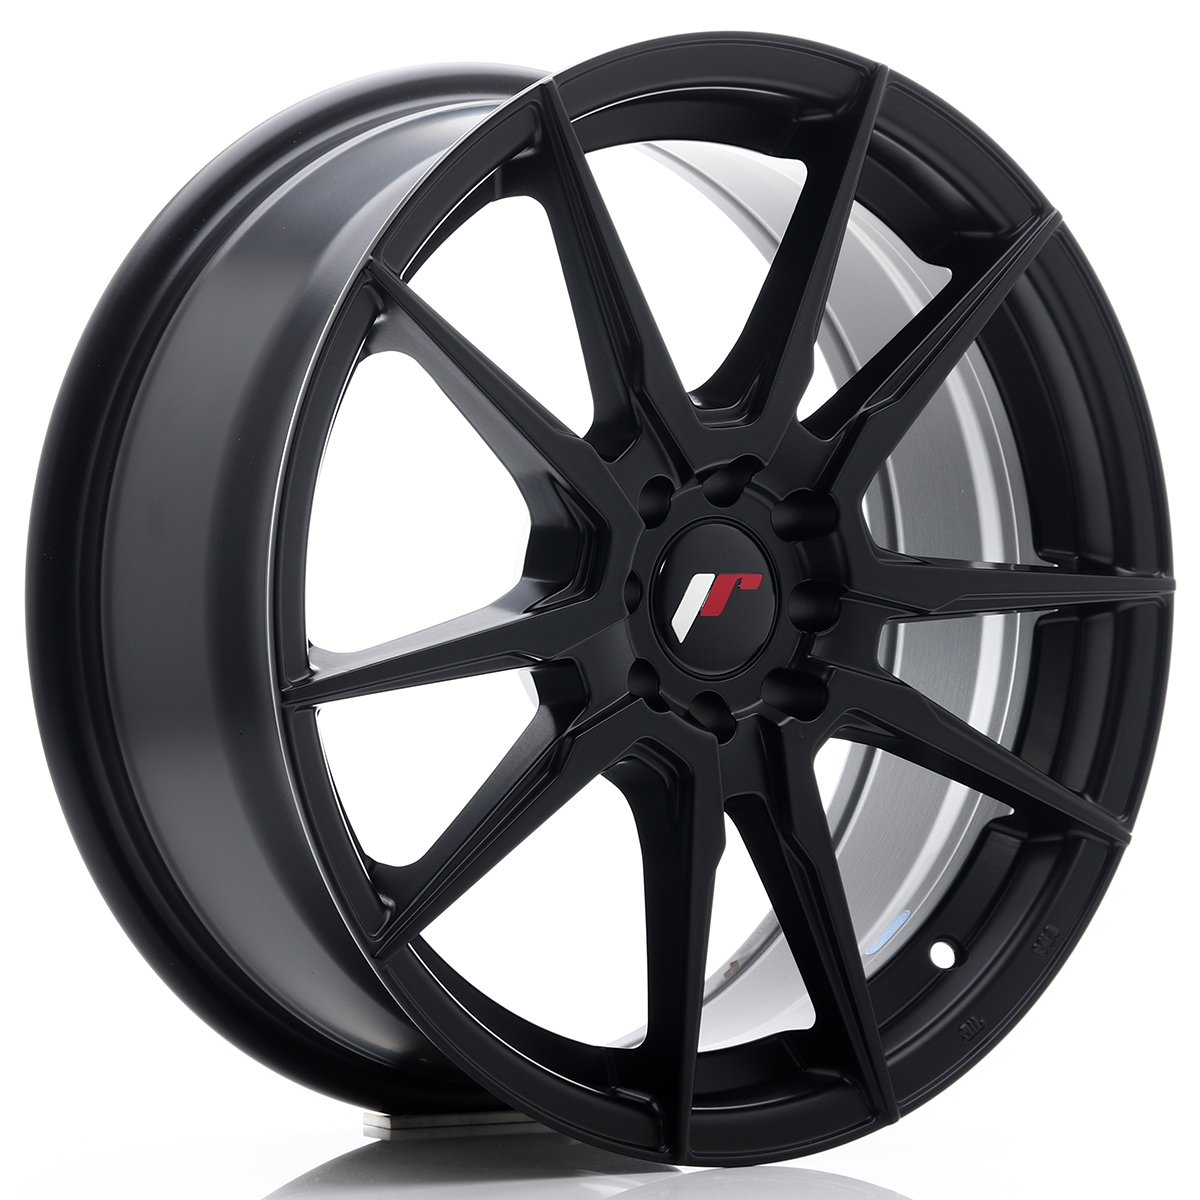 Japan Racing JR Wheels JR21 17x7 ET40 5x108 5x112 Black